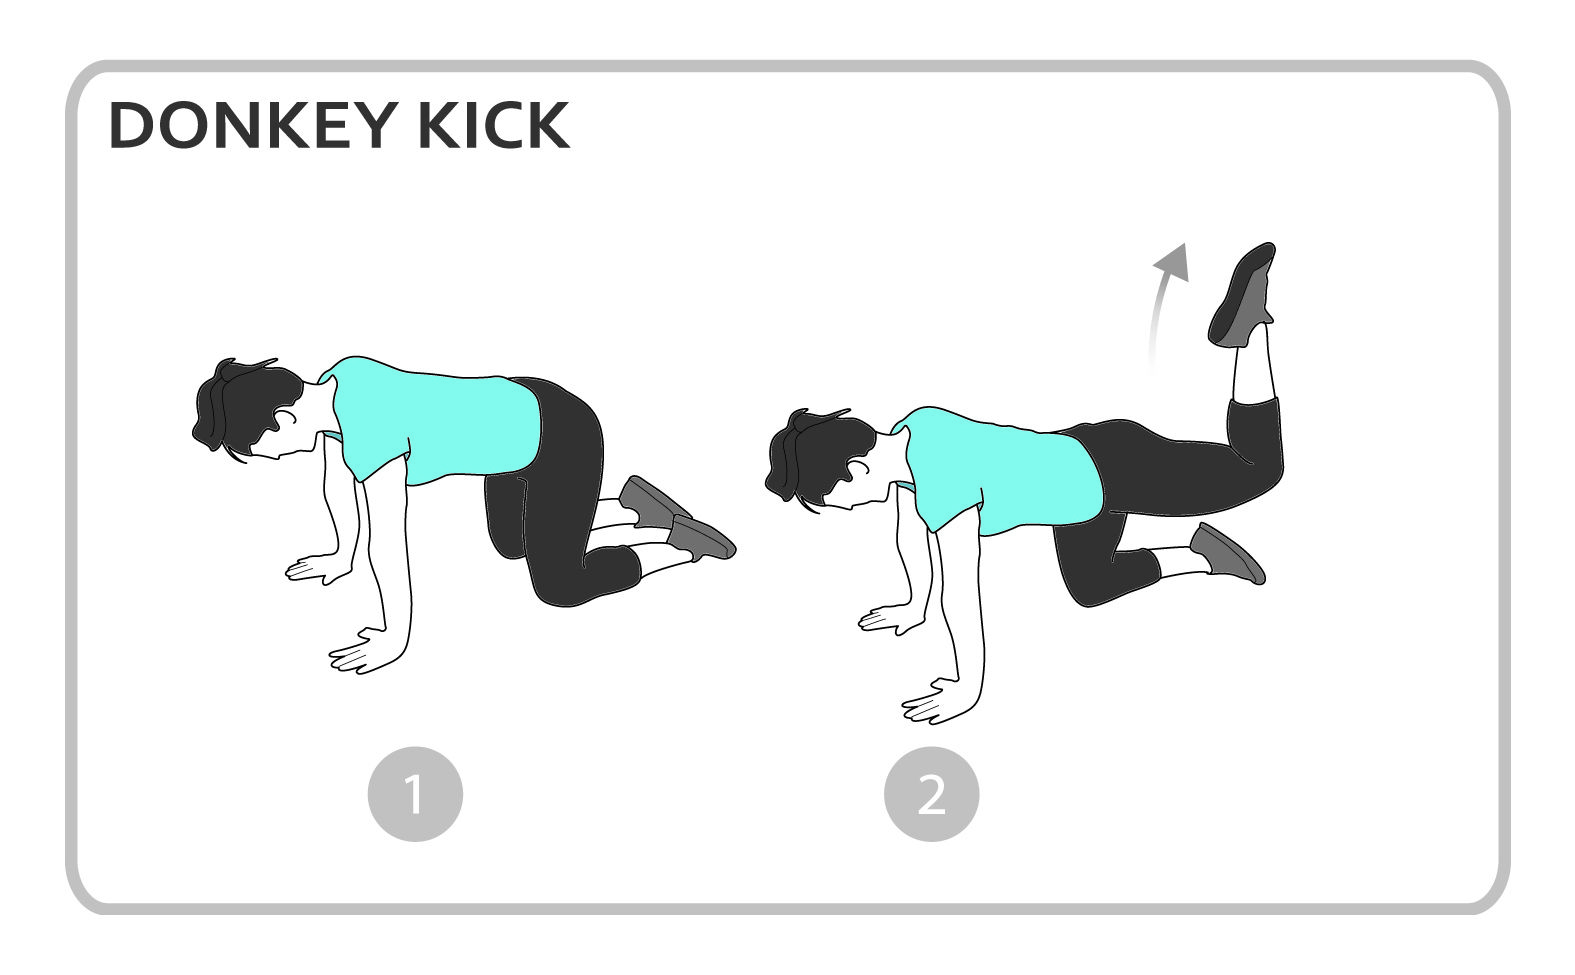 Donkey Kick Exercise Diagram Lower Body Personal Fitness